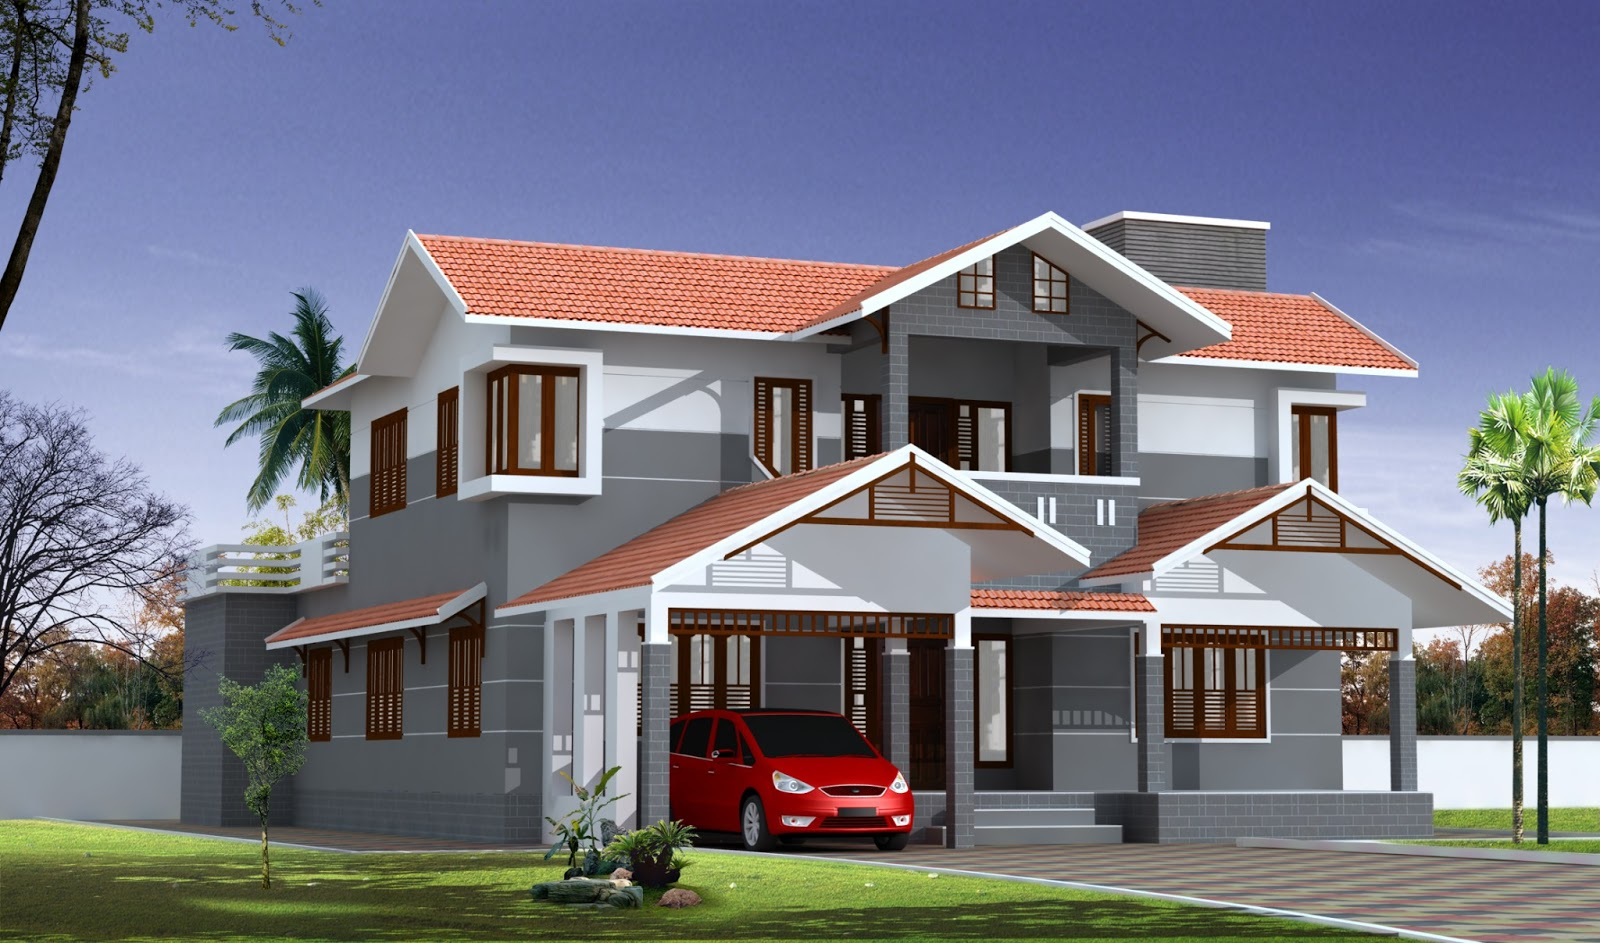 Build a building latest home designs for New build house designs